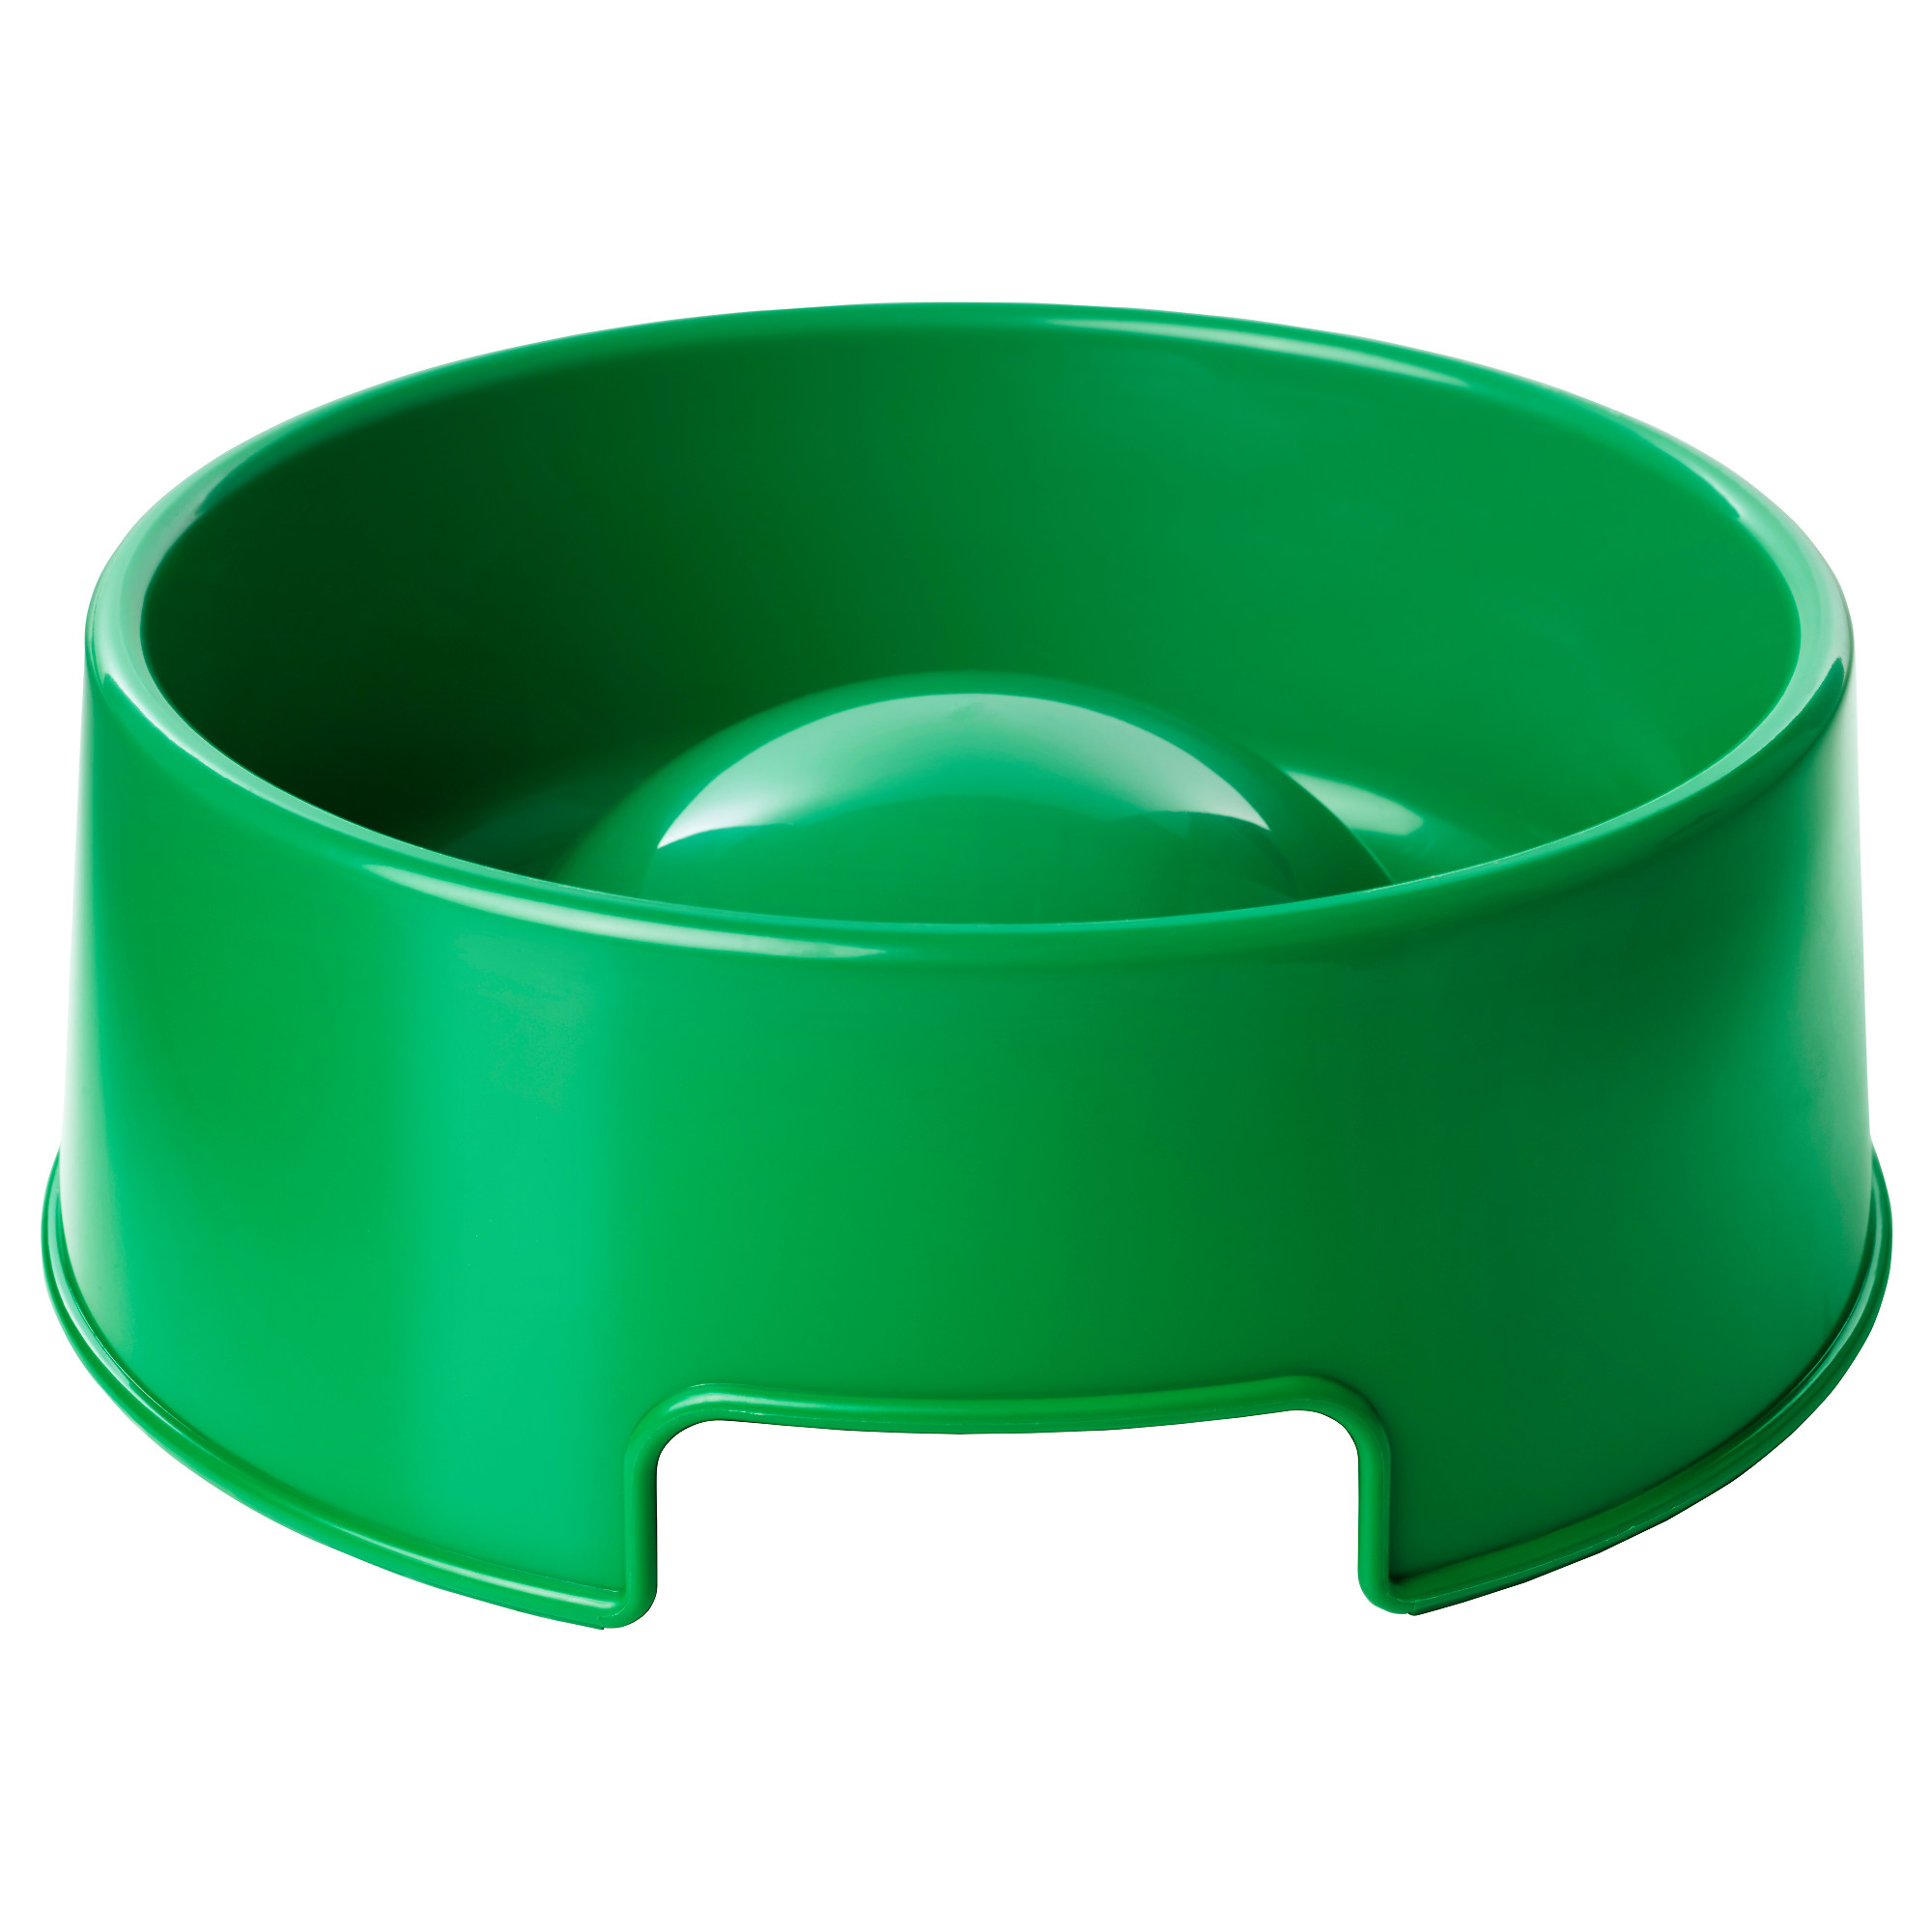 northmate download category greenmini side mini feeder dogs press green for business slow